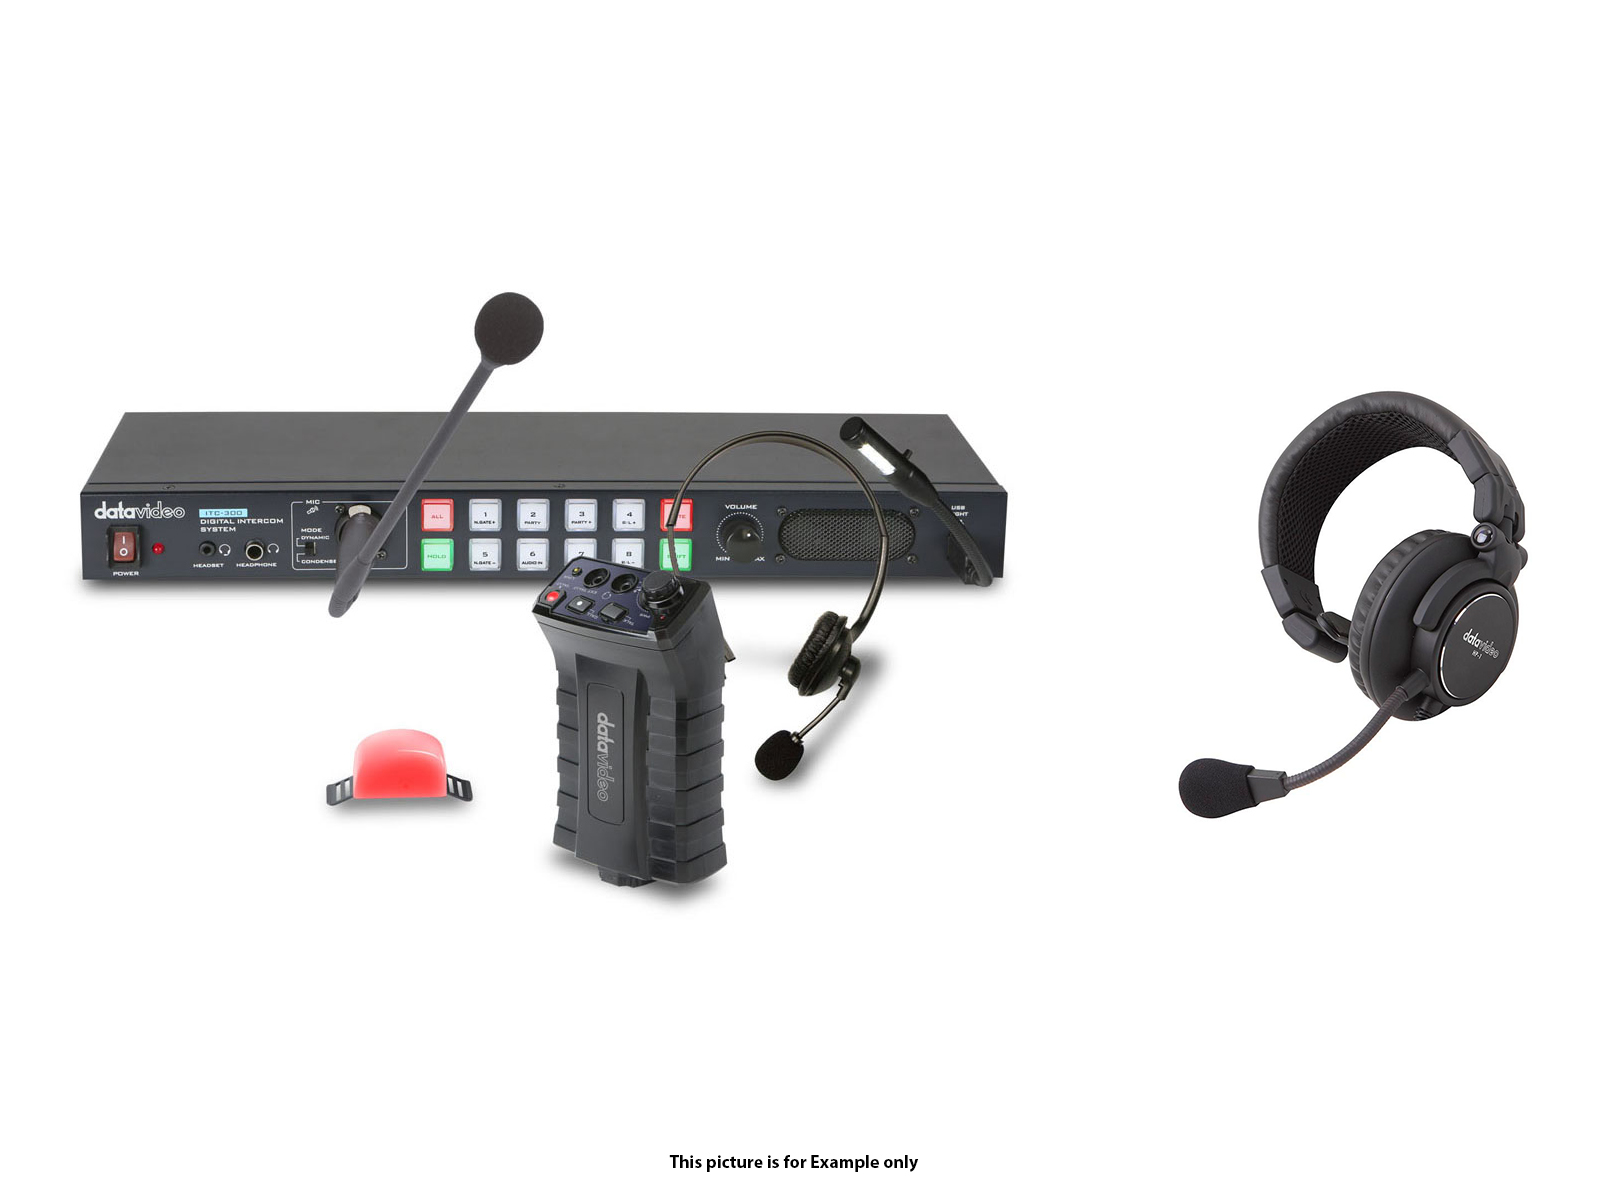 Datavideo ITC300HP1K Digital intercom system with 4x HP1 headsets